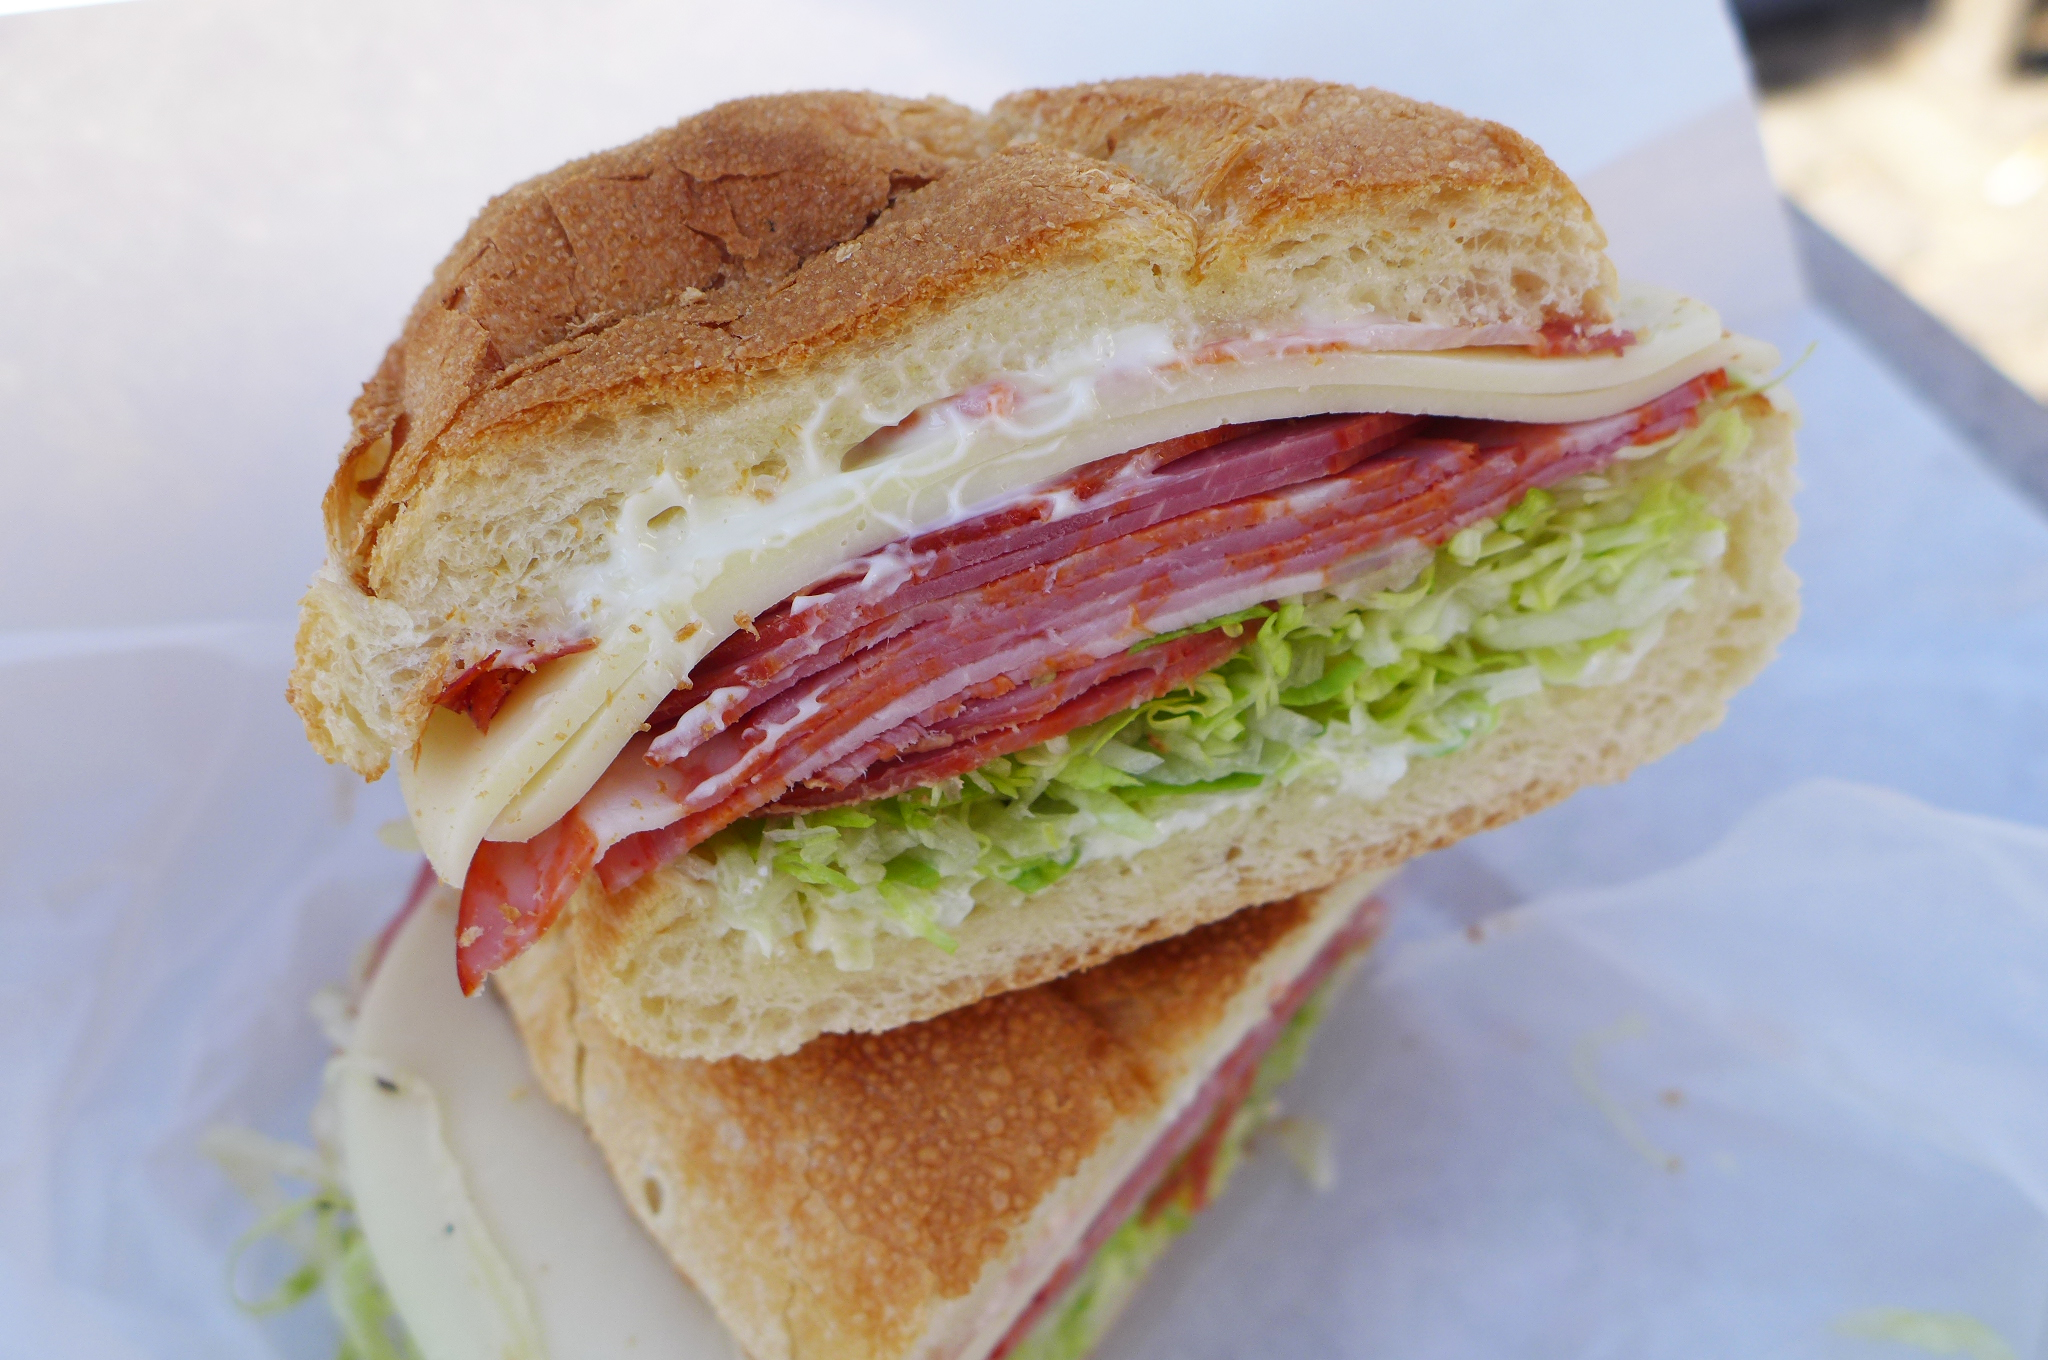 The sandwich shown in cross section with sausage, cheese, lettuce, tomato, and mayo.